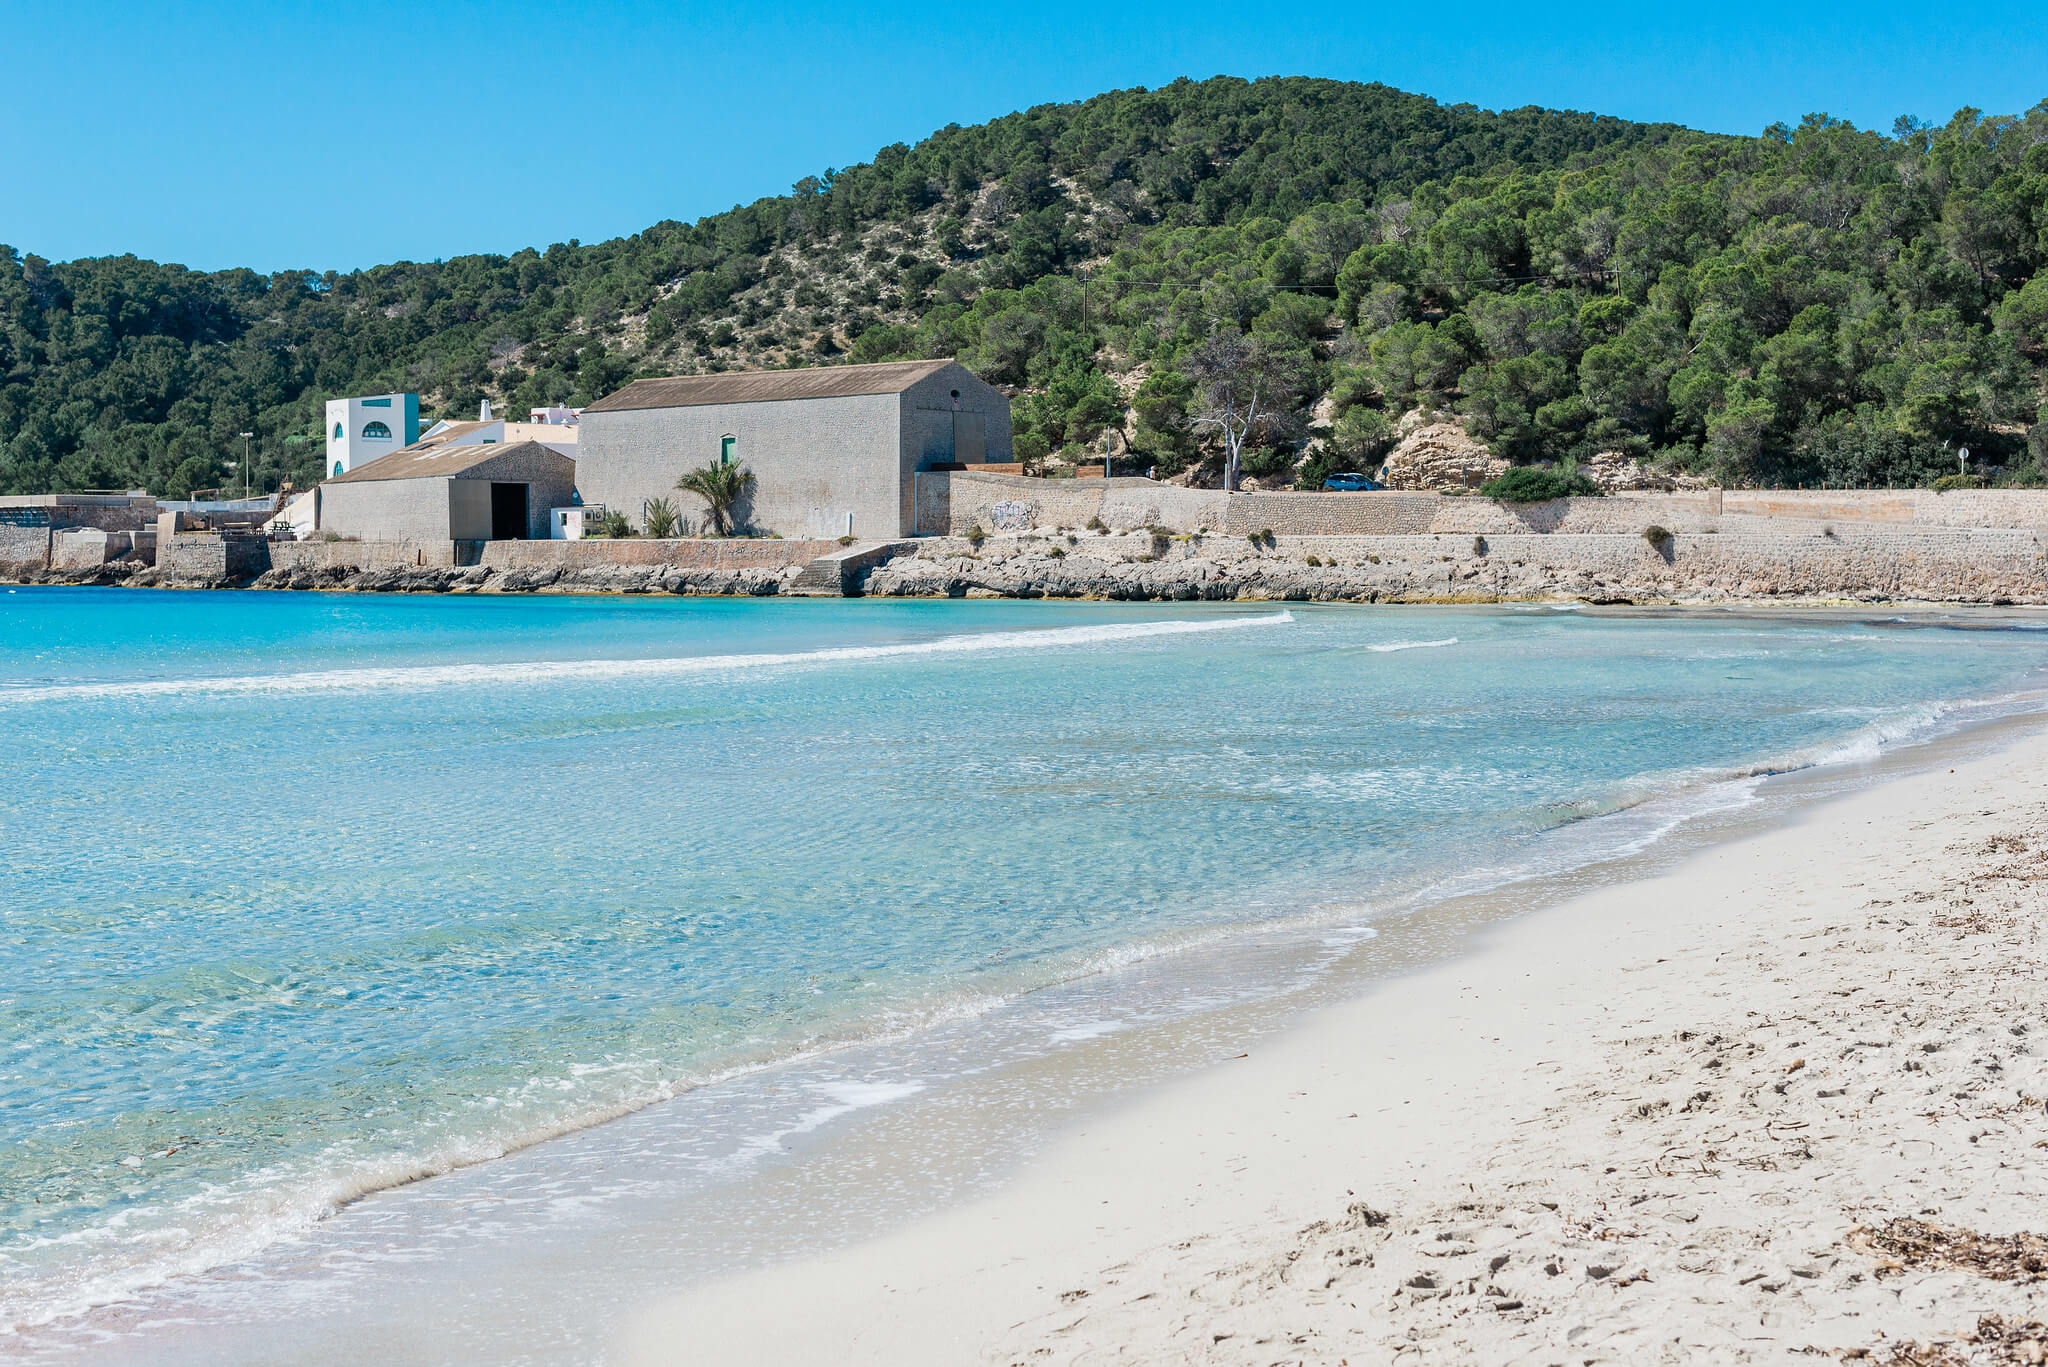 https://www.white-ibiza.com/wp-content/uploads/2020/03/ibiza-beaches-las-salinas-03.jpg